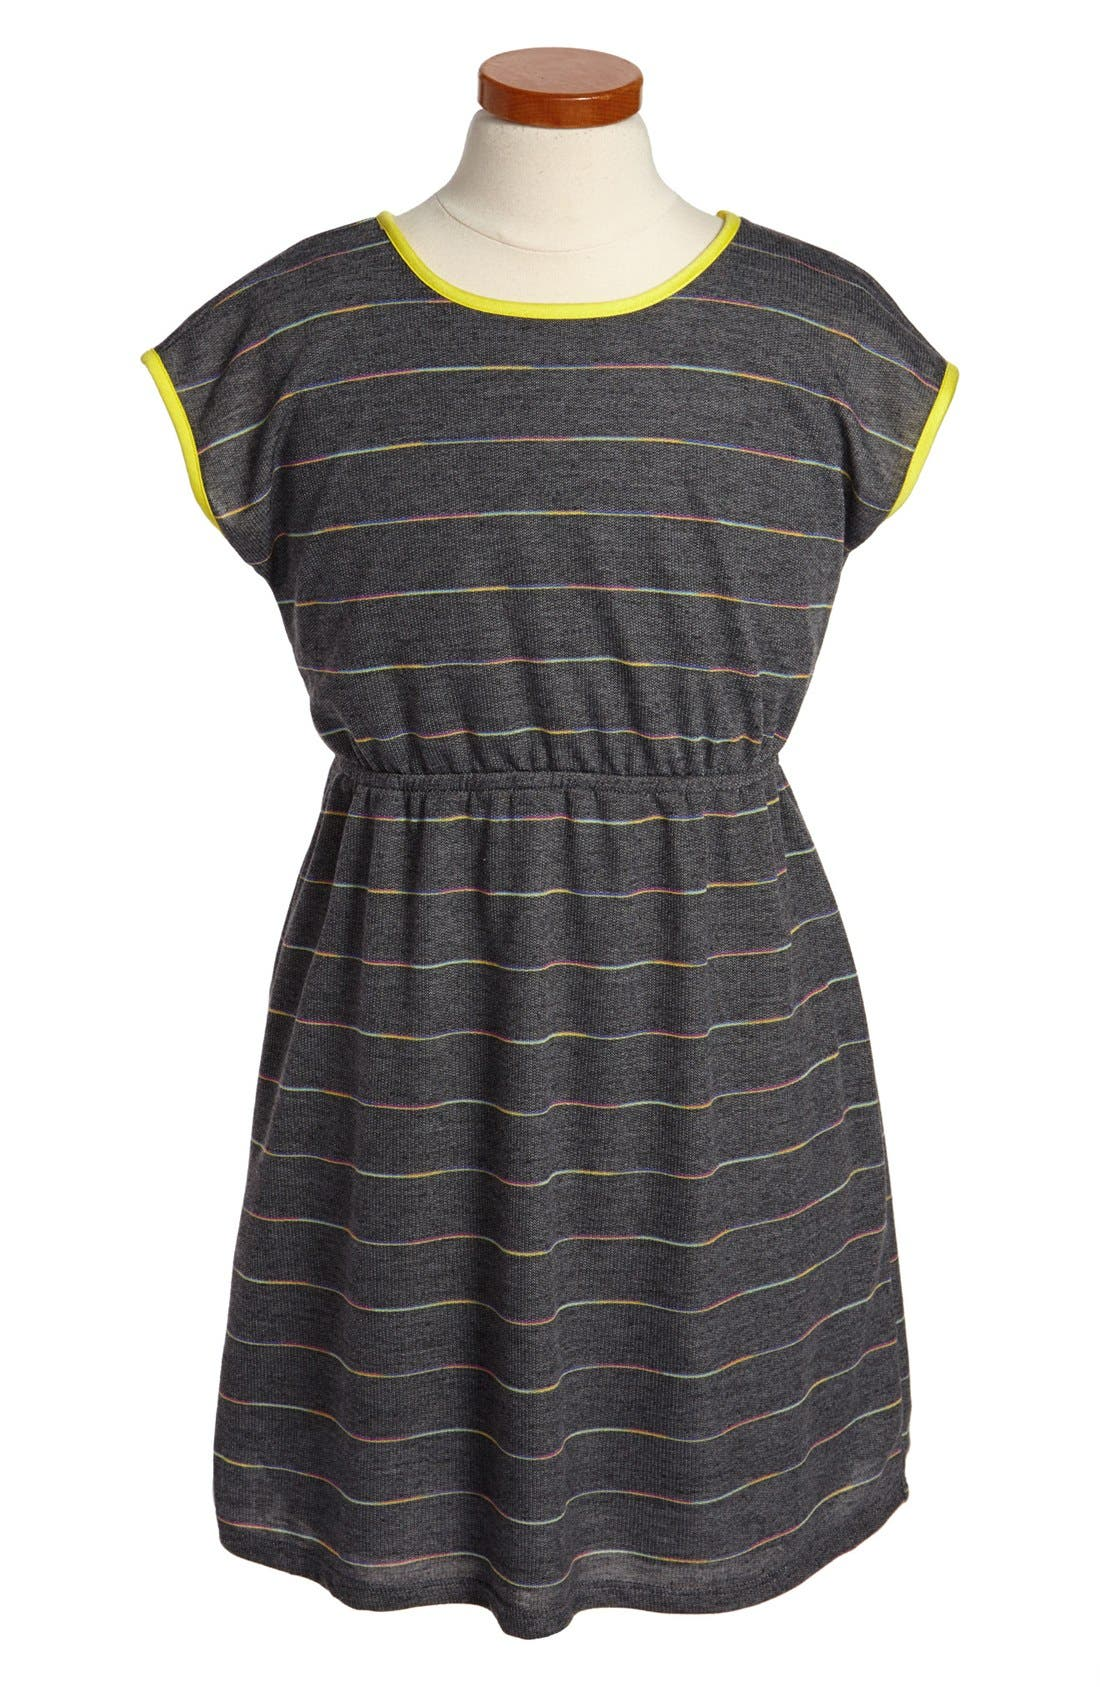 Alternate Image 1 Selected - Soprano Stripe Dress (Big Girls)